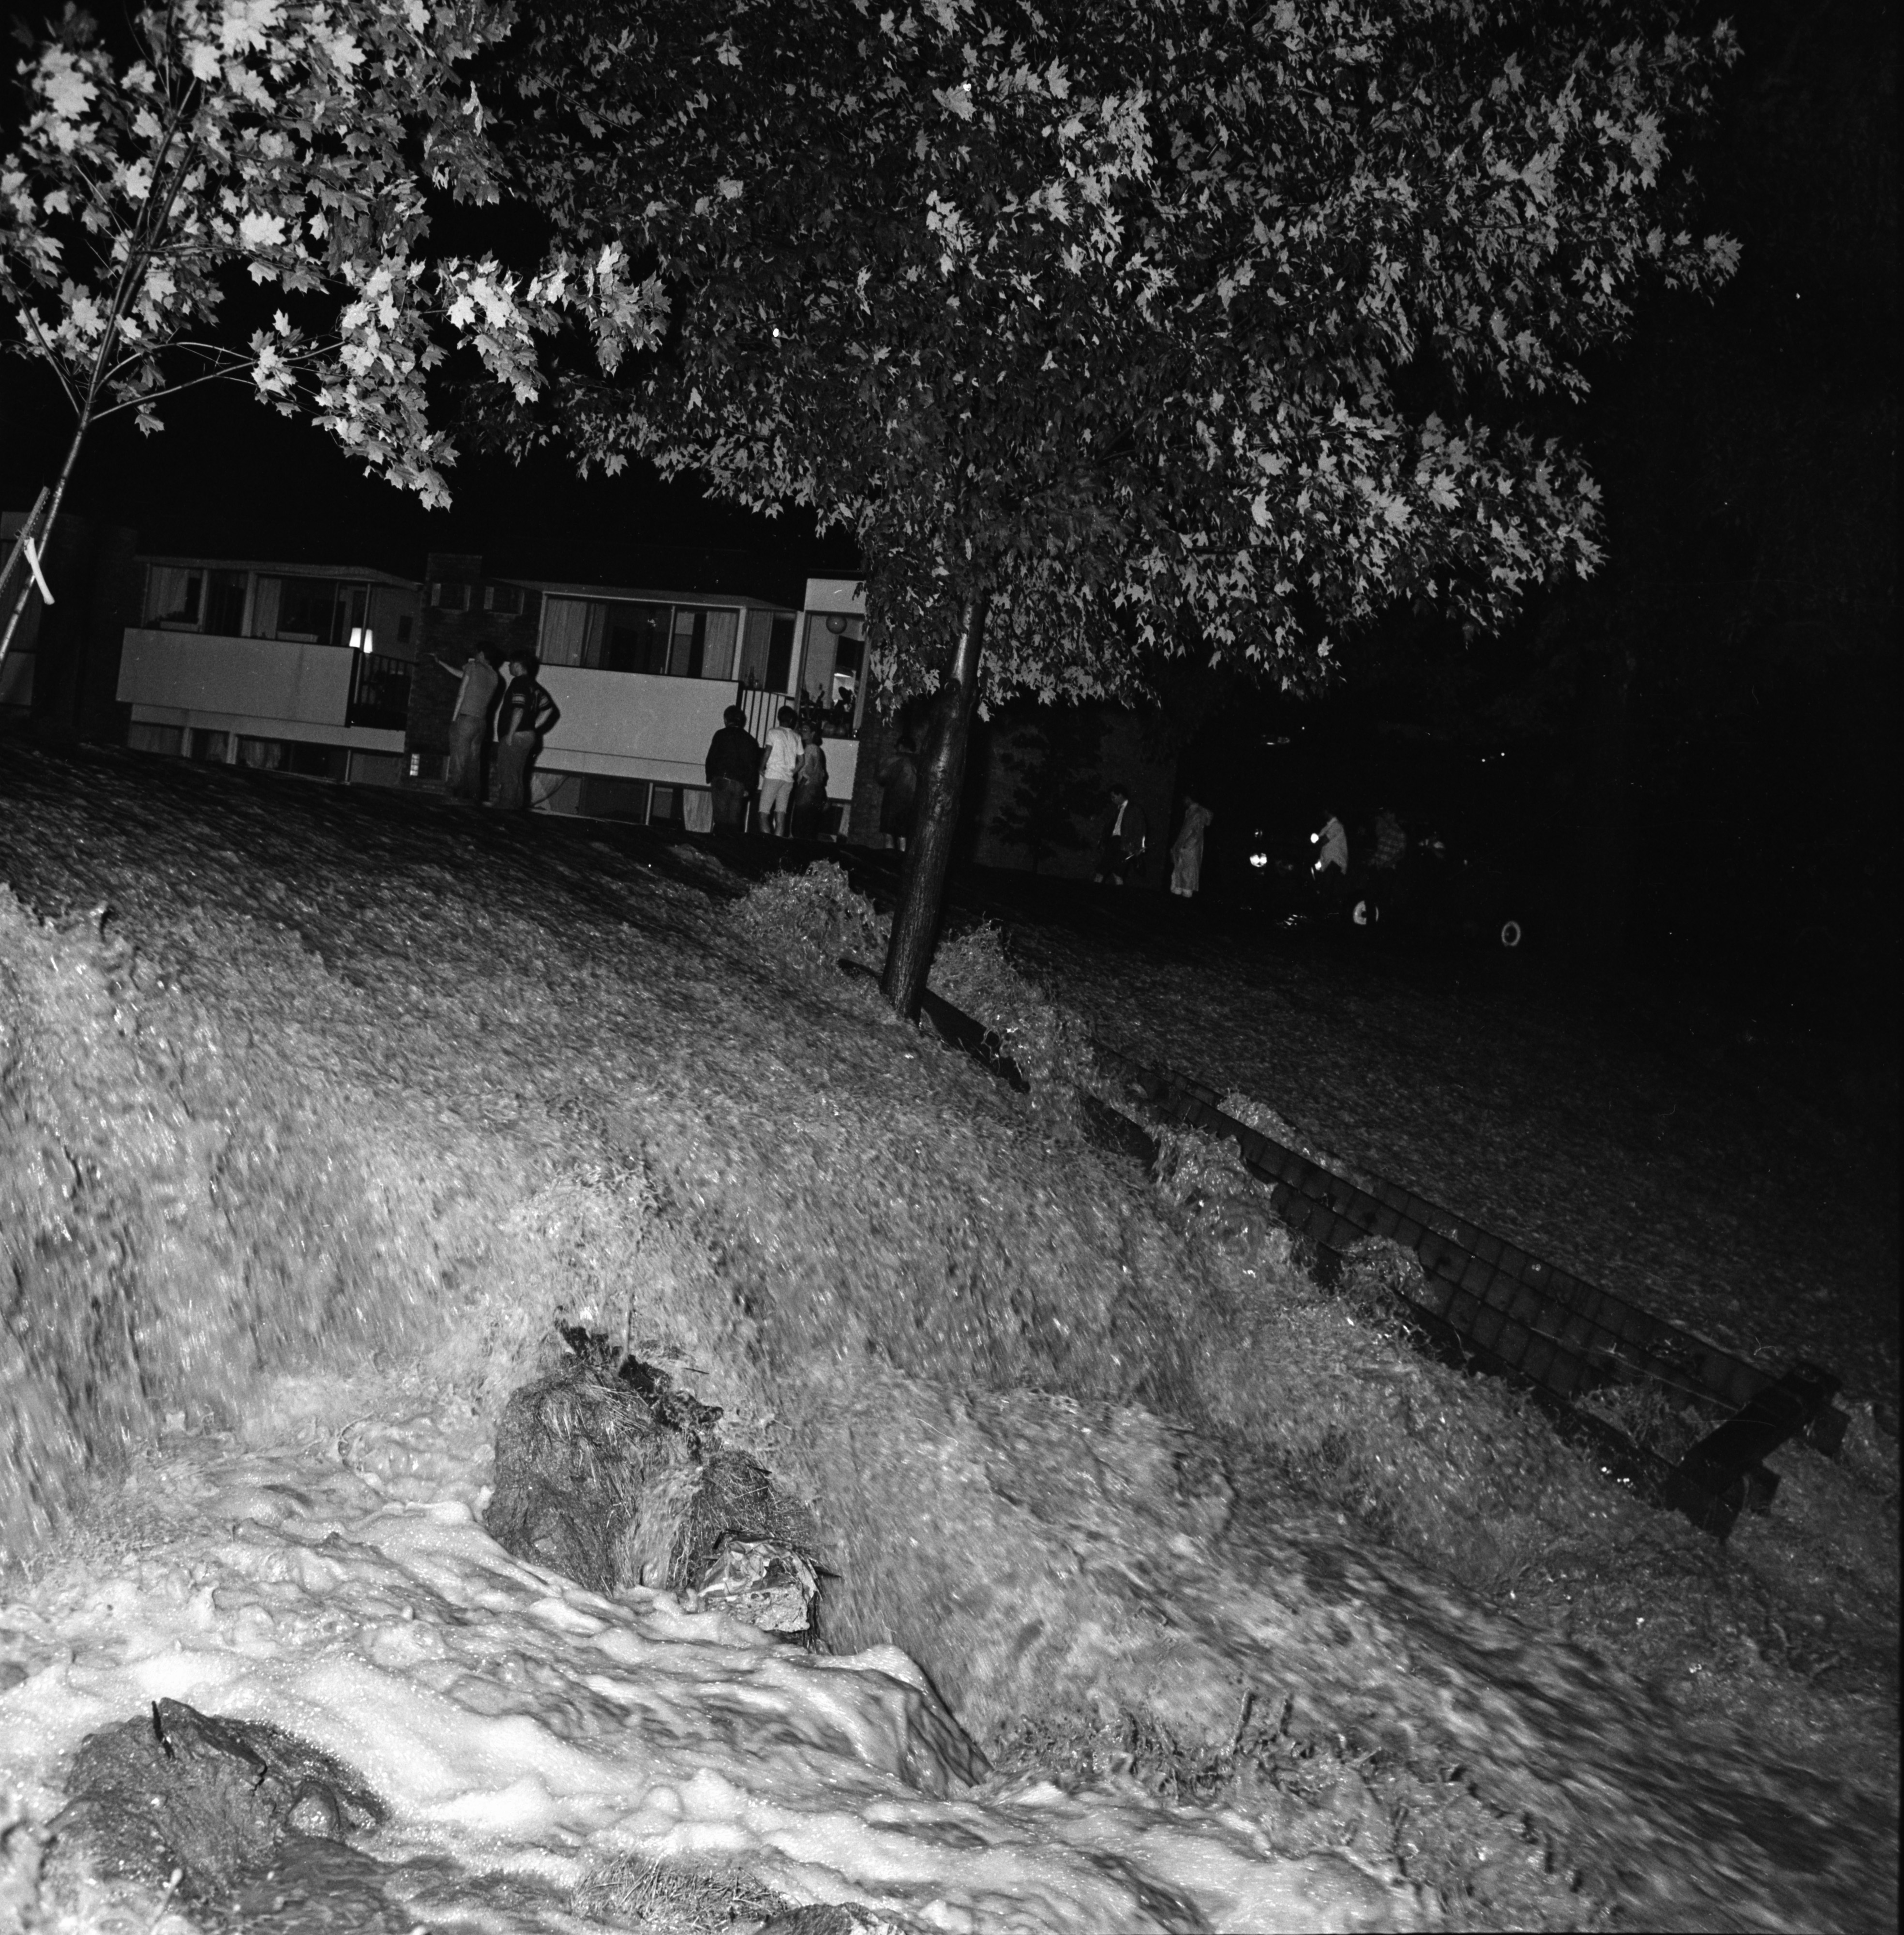 Water pours down a hill at Brookside Apartments on Plymouth Rd, June 1968 image